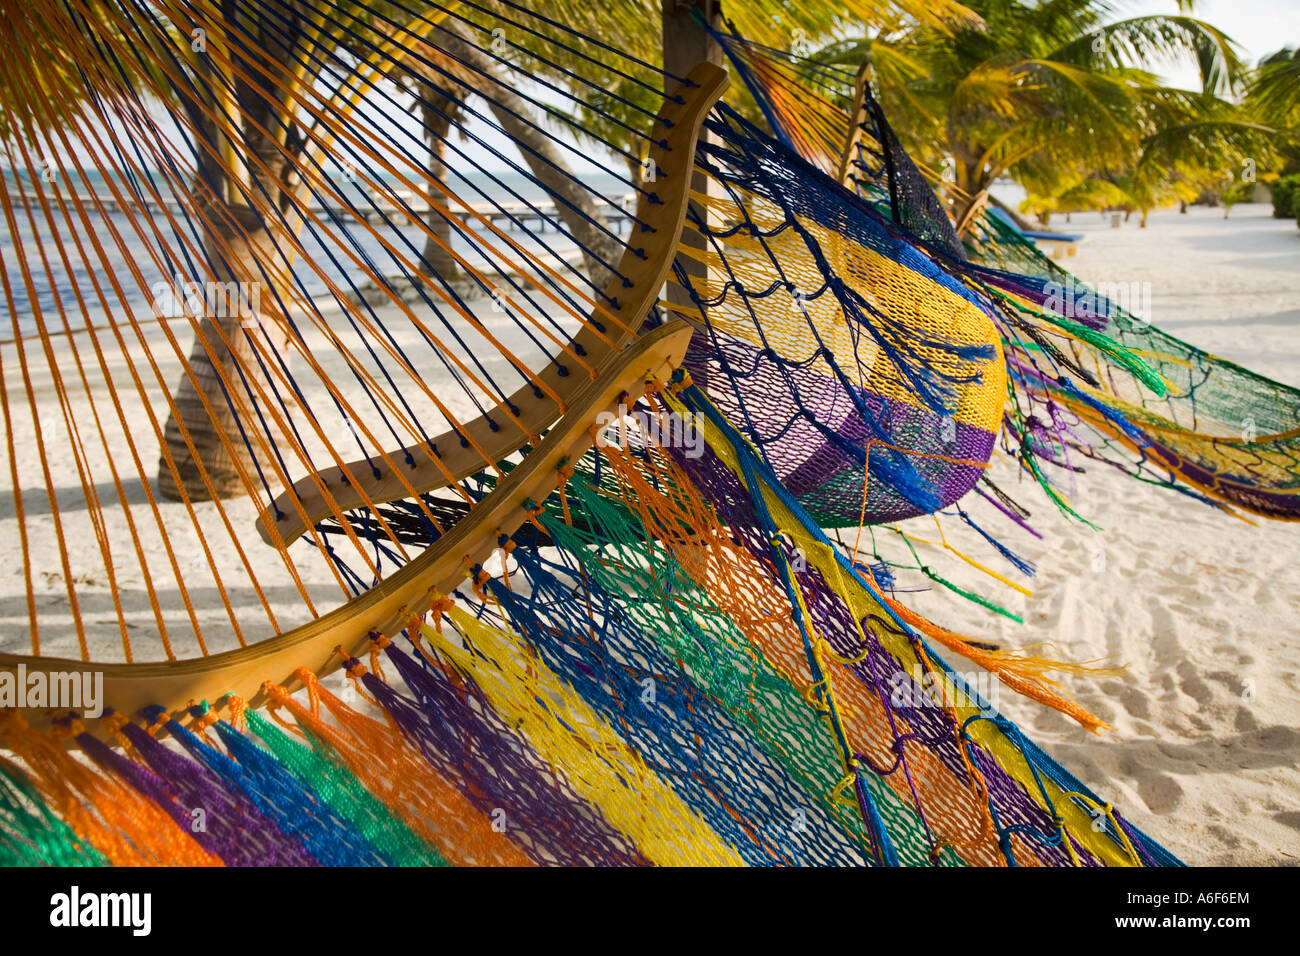 belize ambergris caye several colorful hammocks blowing in wind sandy beach and palm trees caribbean waters belize ambergris caye several colorful hammocks blowing in wind      rh   alamy